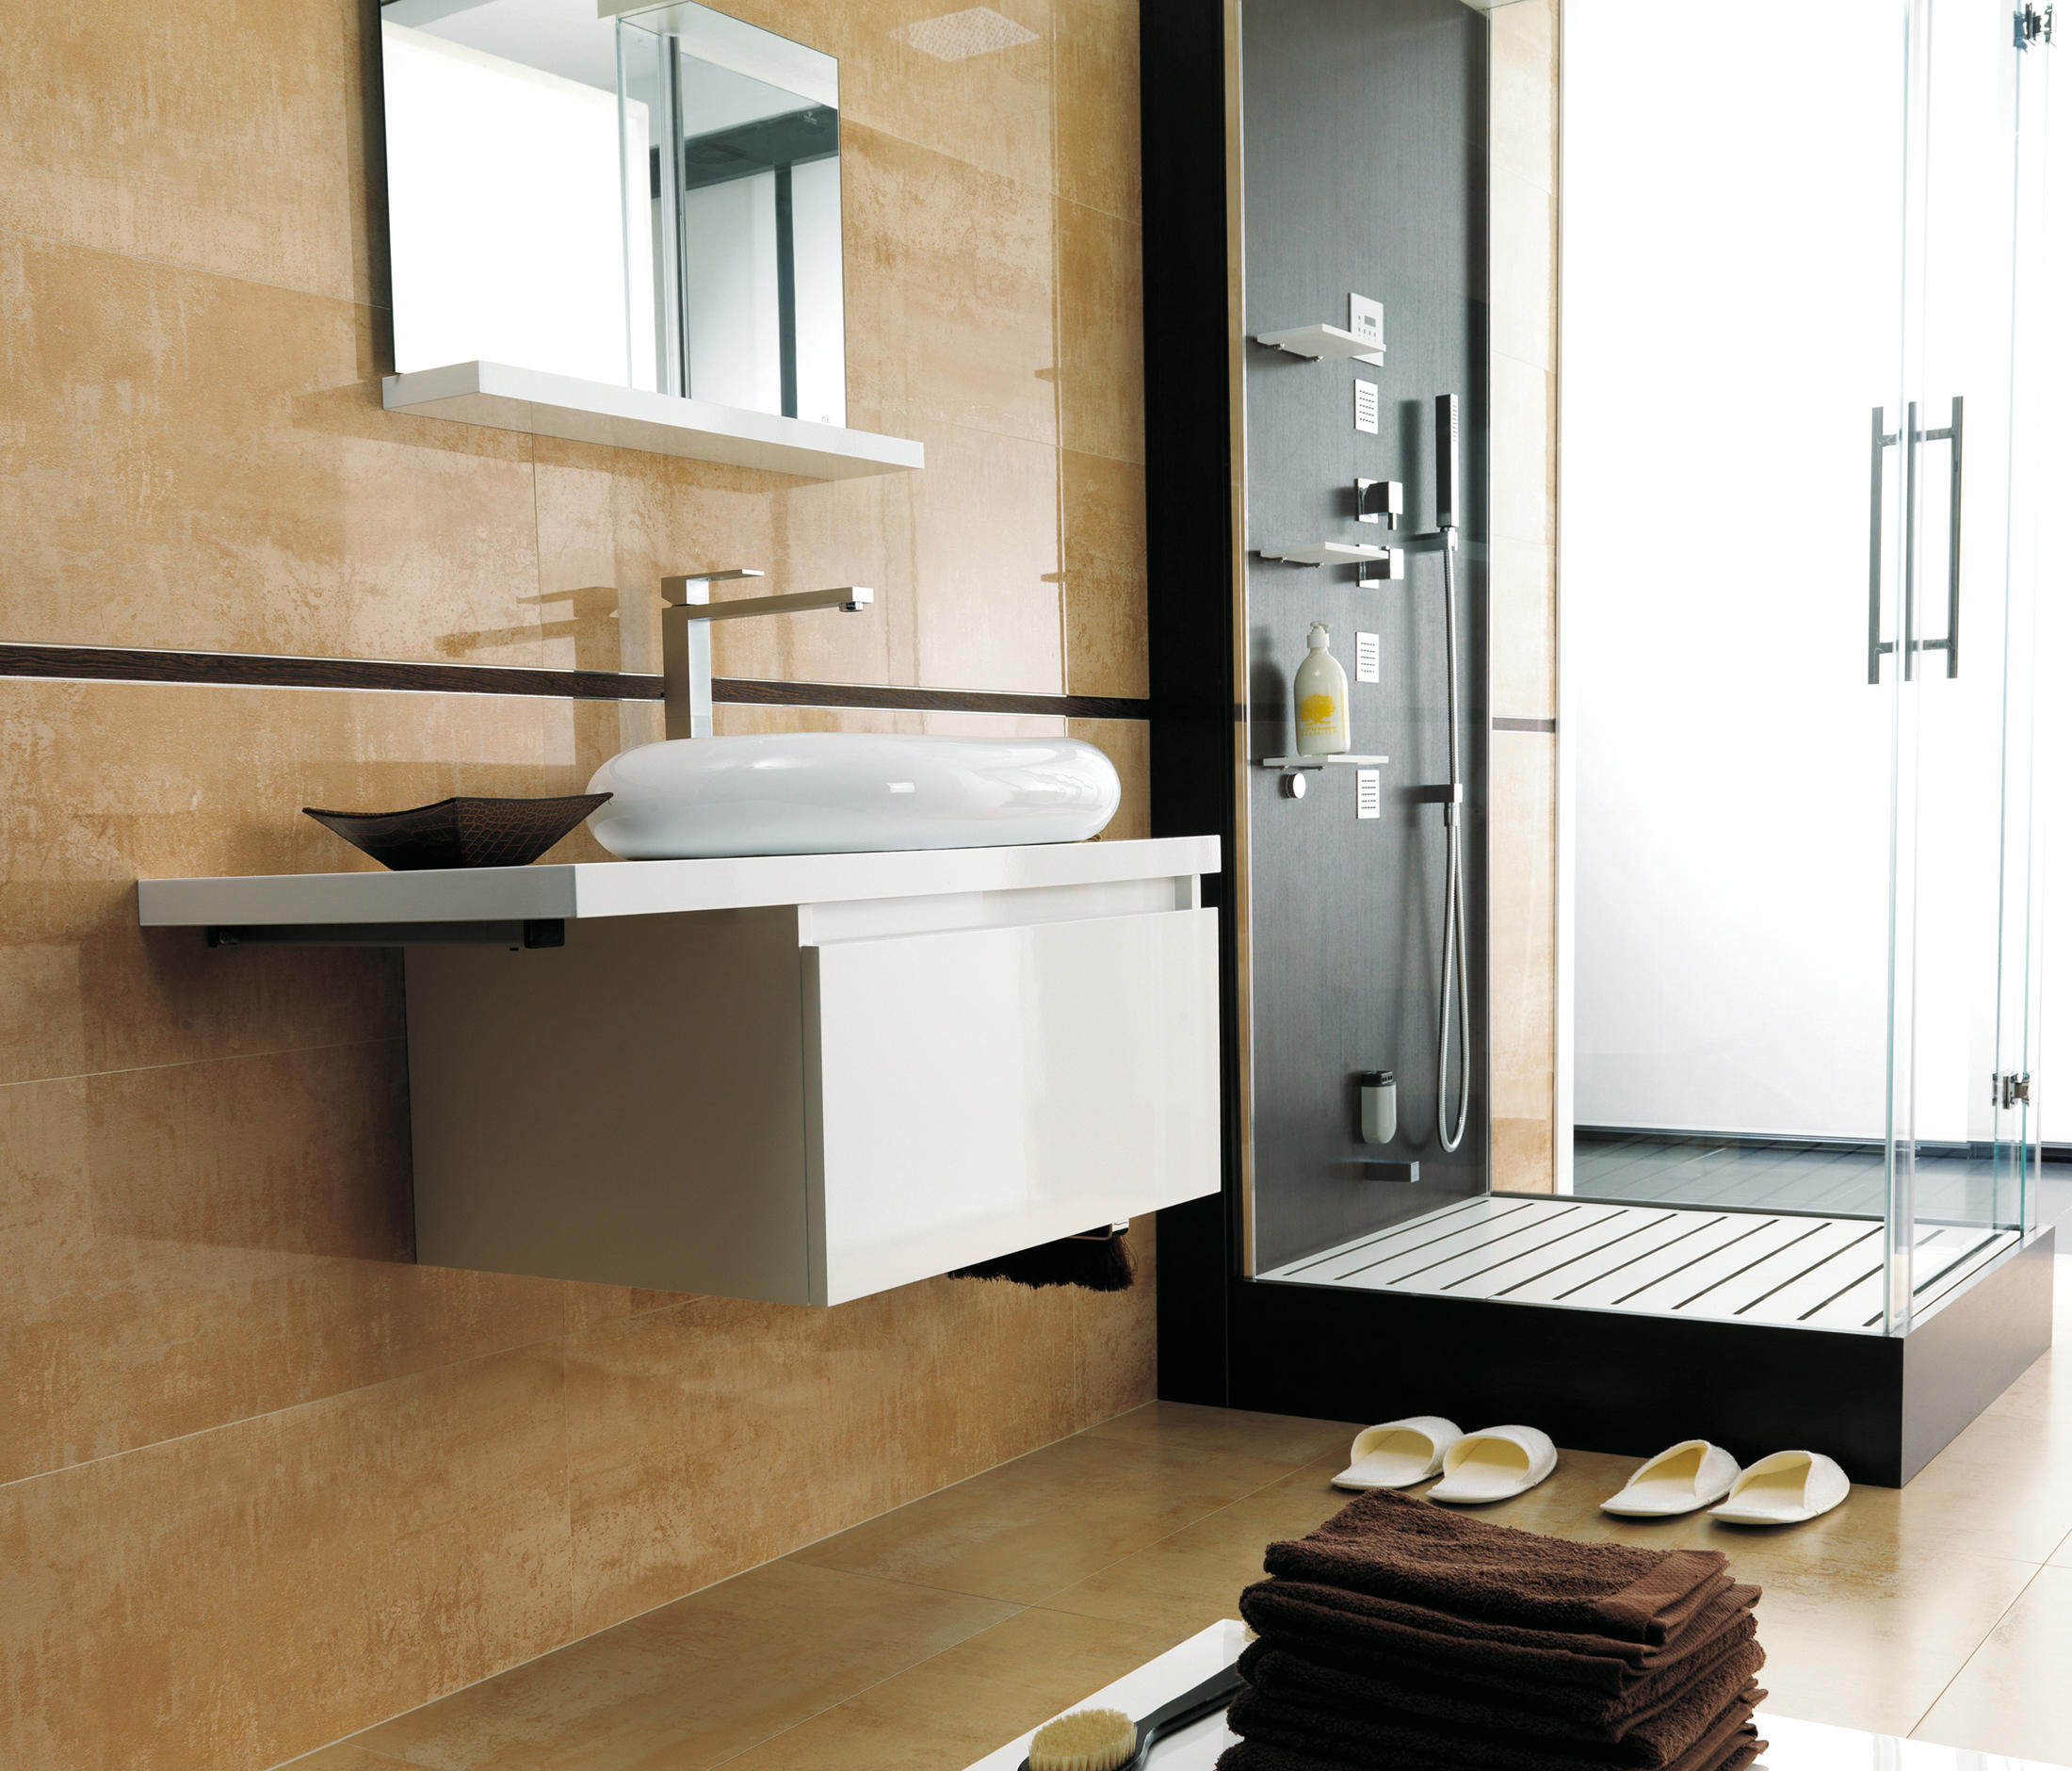 SHINE LATON Ceramic Panels From Porcelanosa Architonic - Porcelanosa bathroom accessories